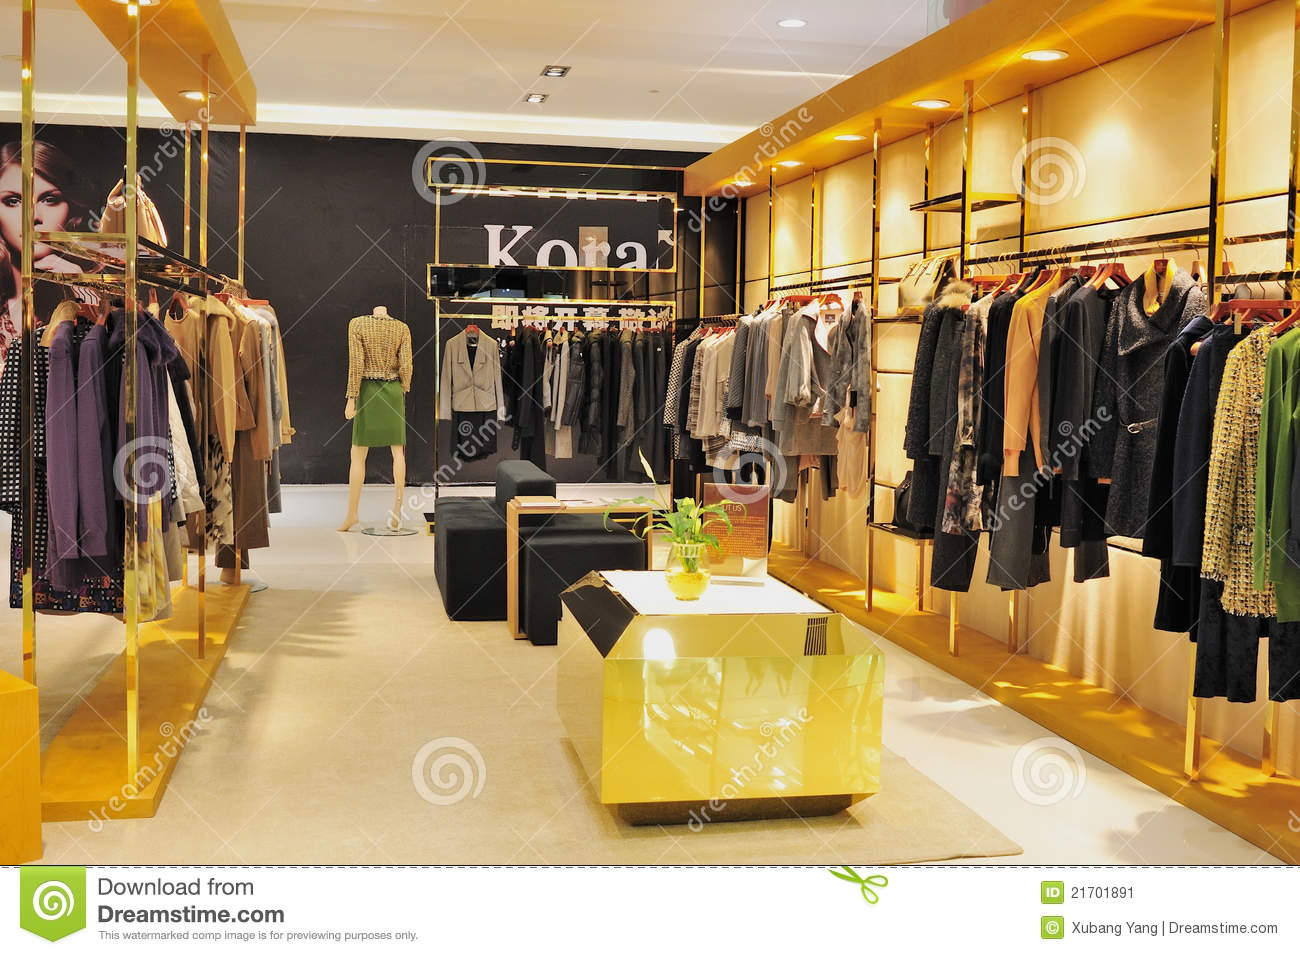 Clothing stores online Cheap clothing stores in california